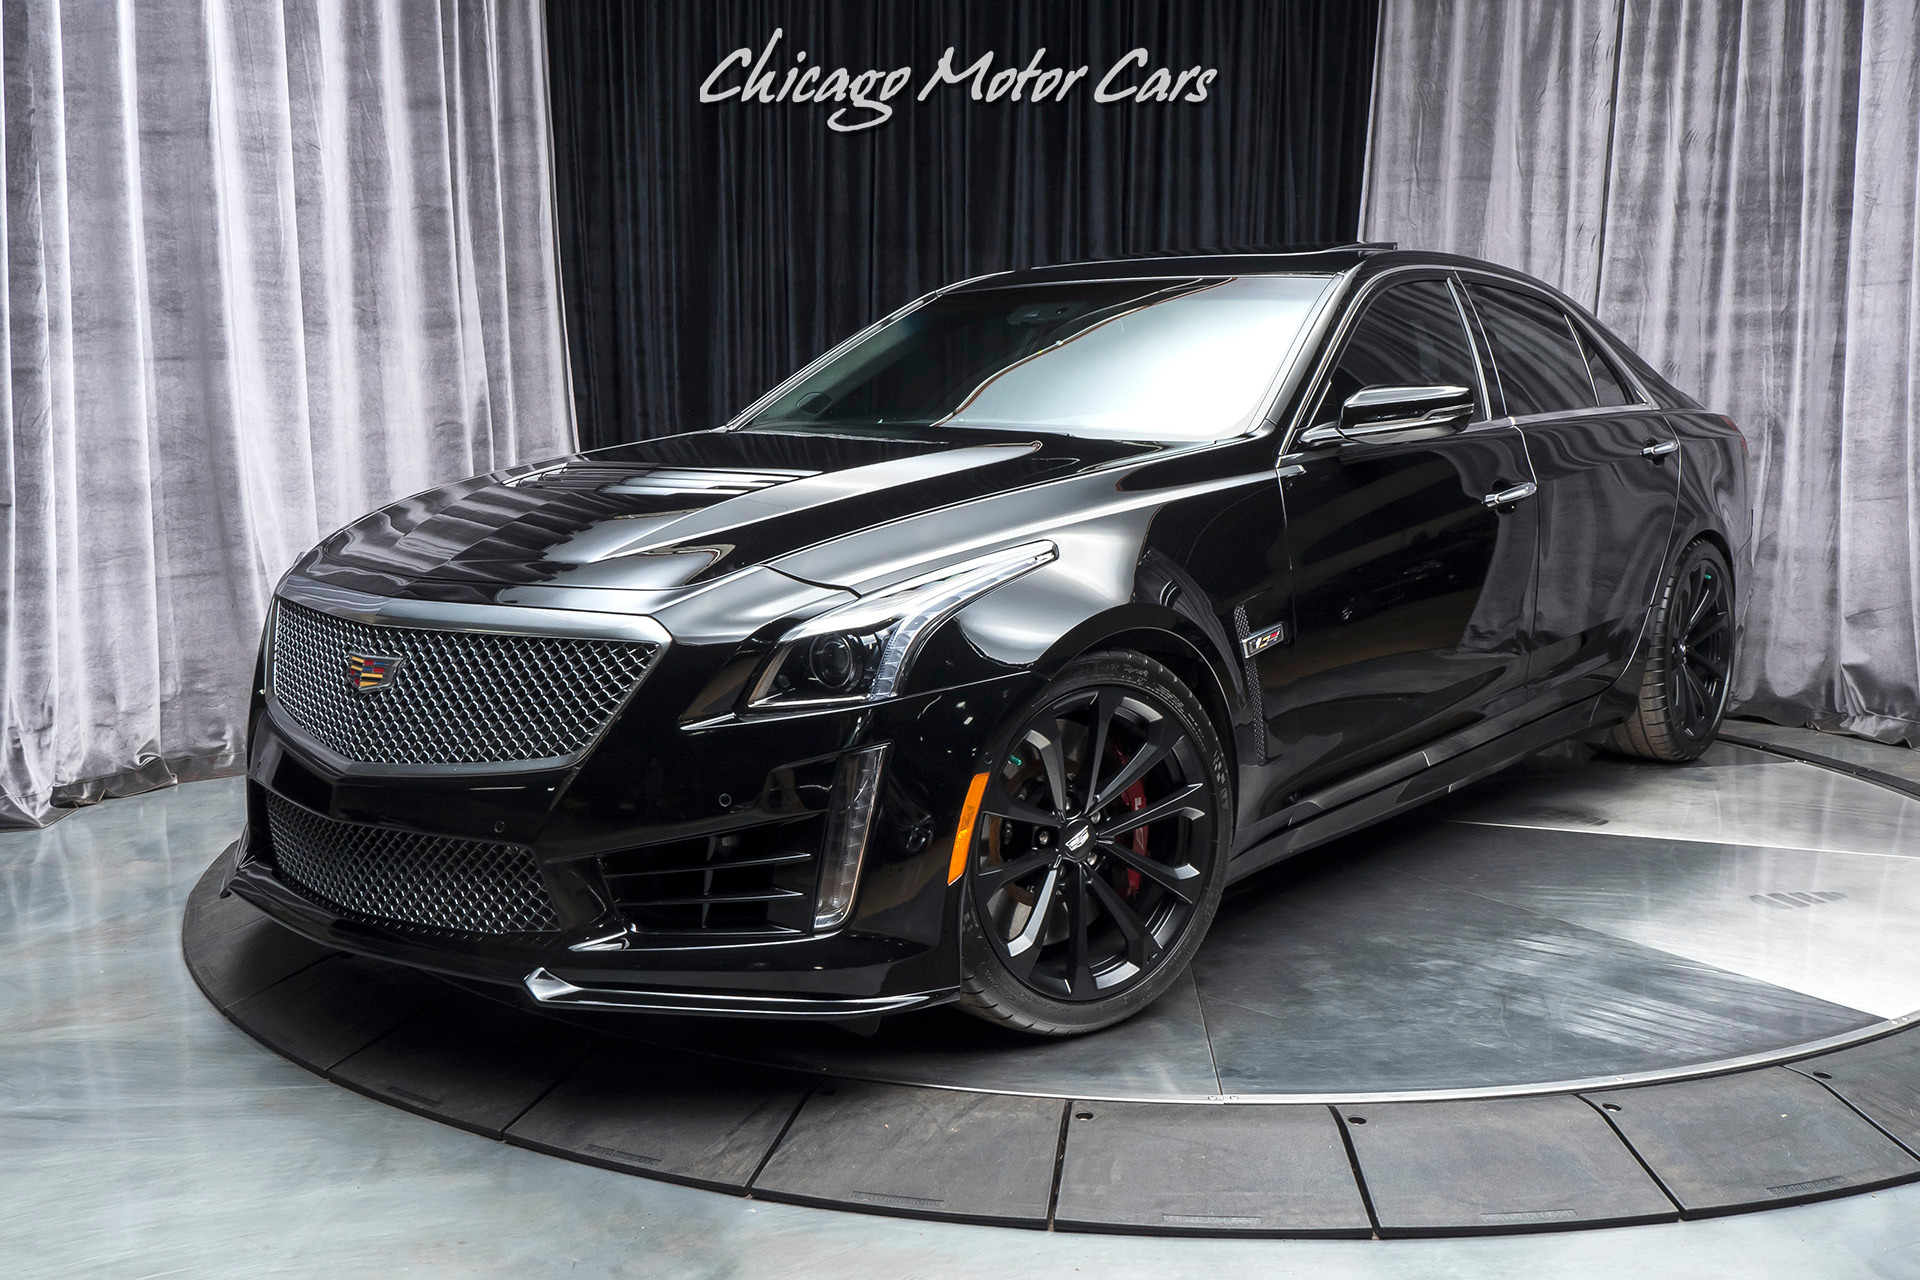 Used 2016 Cadillac Cts V Sedan Msrp 89k Luxury Package Ultraview Sunroof For Sale Special Pricing Chicago Motor Cars Stock 16699a